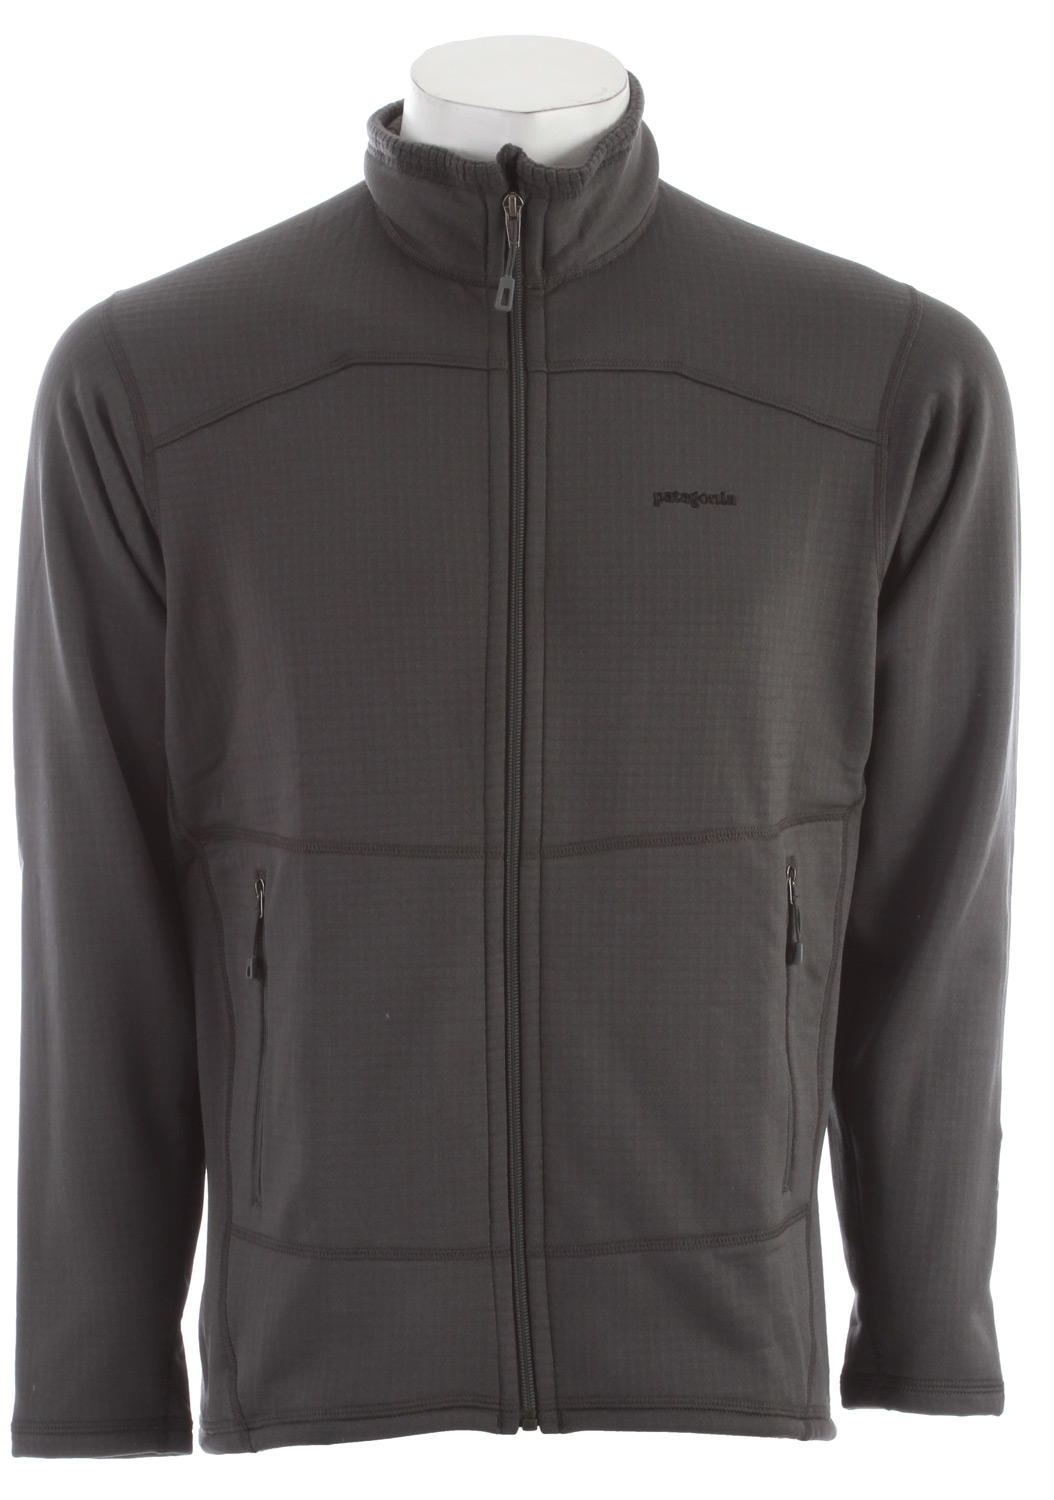 The optimal full-zip midlayer or baselayer for alpine endeavors in demanding conditions, the R1 Jacket is made with Regulator grid fleece for outstanding stretch, breathability, compressibility and durability. FABRIC: 6.8-oz Polartec Power Dry 93% polyester (41% recycled)/7% spandexKey Features of the Patagonia R1 Full Zip Fleece: Slim fit Versatile R1 fleece provides excellent stretch, warmth, wicks moisture and breathes in a variety of temperatures Interior high/low grid fleece enhances compressibility, airflow and dry time Microfiber face speeds dry time and allows for easy layering Off-shoulder seam construction reduces bulk under a pack Two zippered handwarmer pockets - $104.95